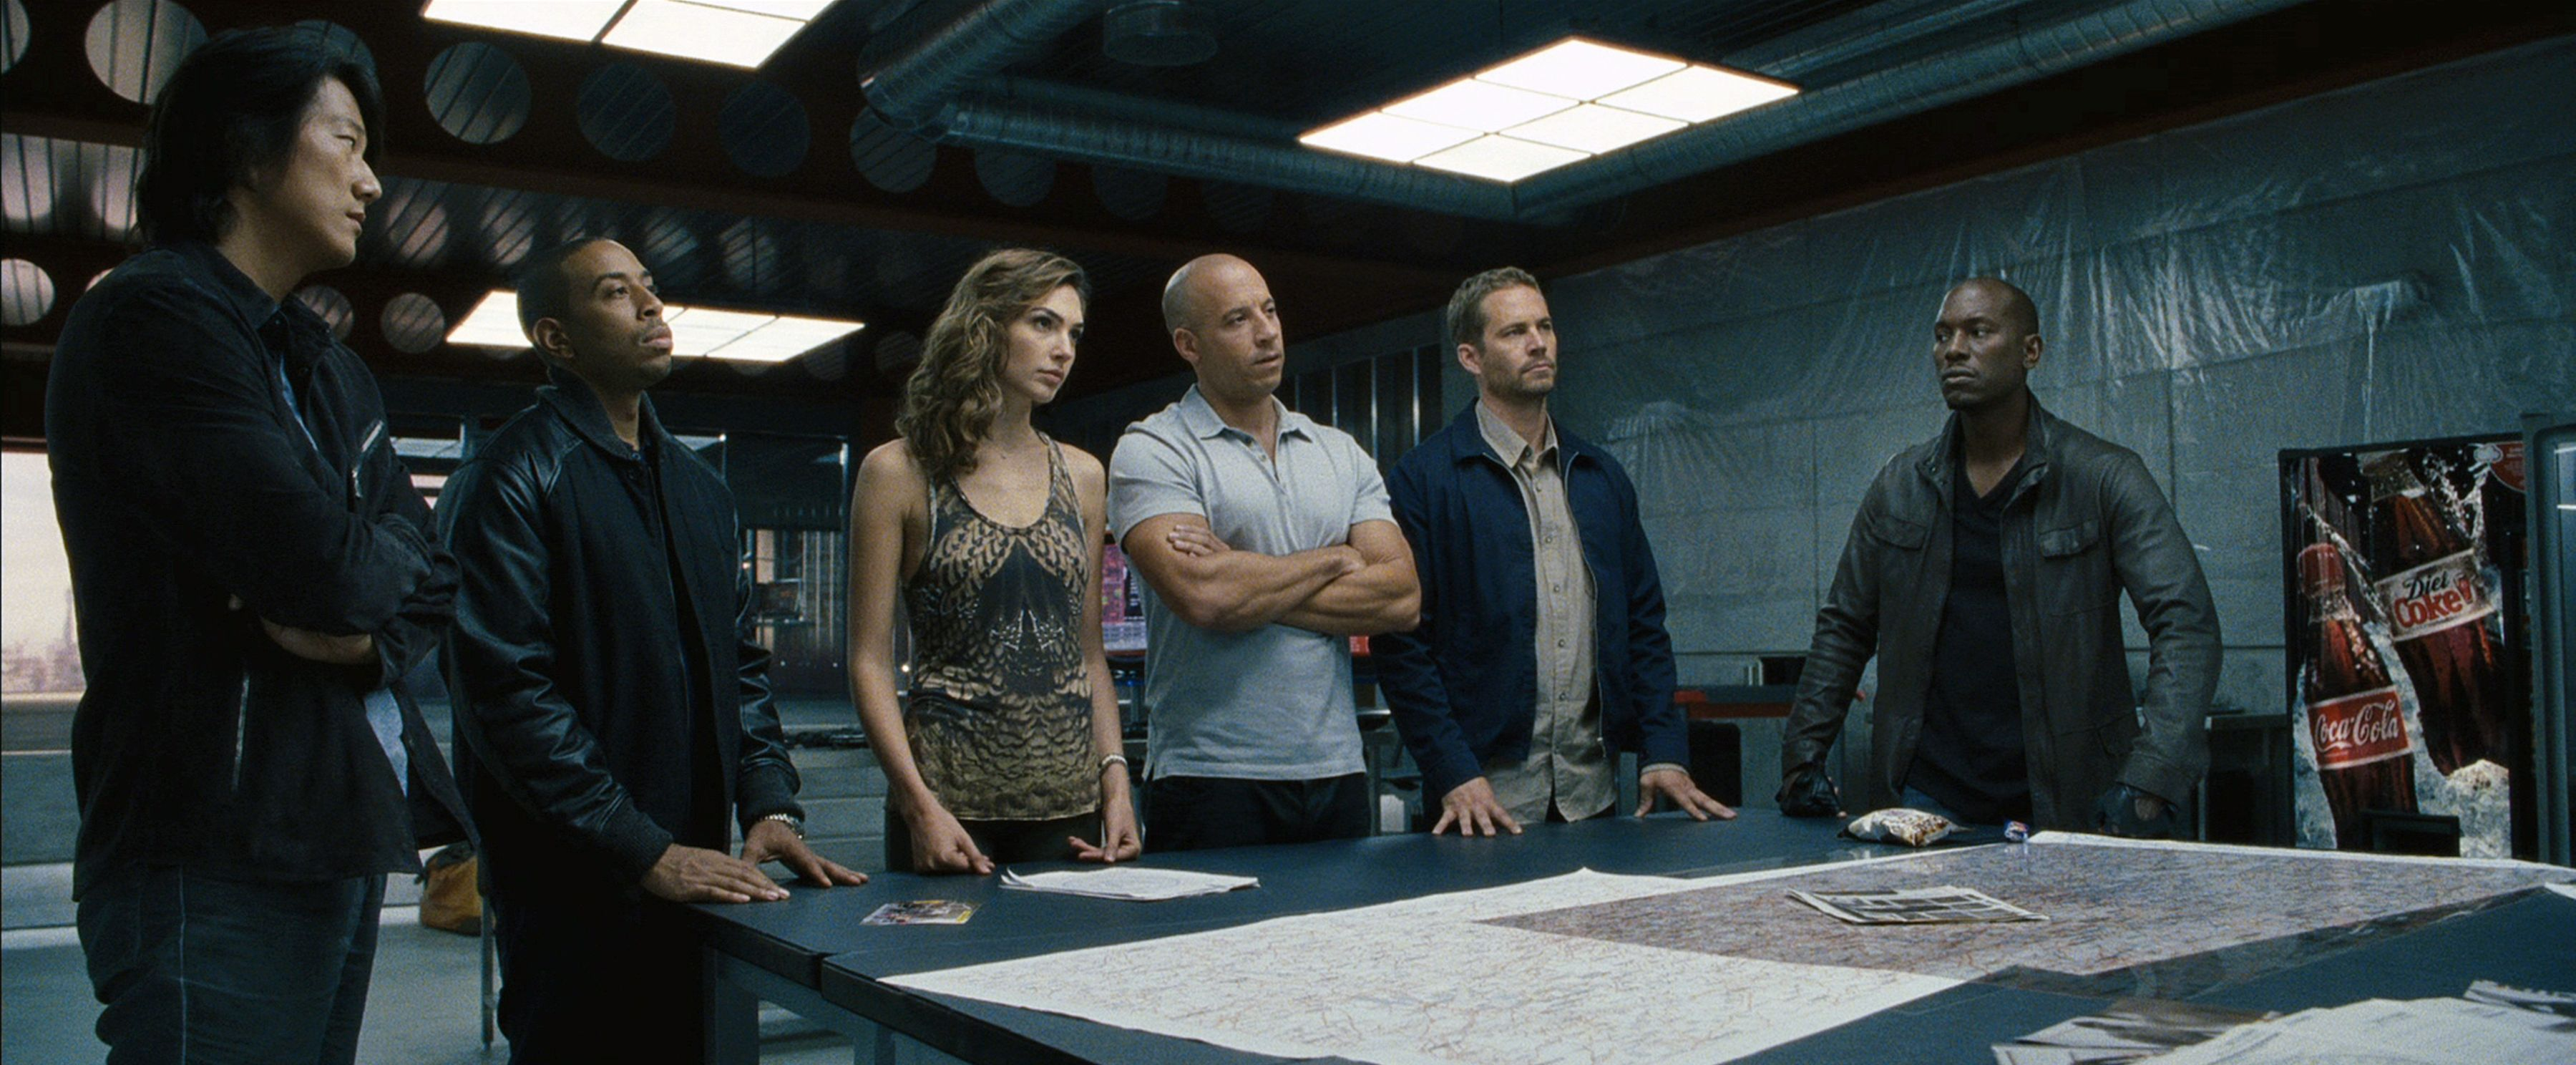 fast furious 6 images fast furious 6 stars vin diesel dwayne johnson and michelle. Black Bedroom Furniture Sets. Home Design Ideas